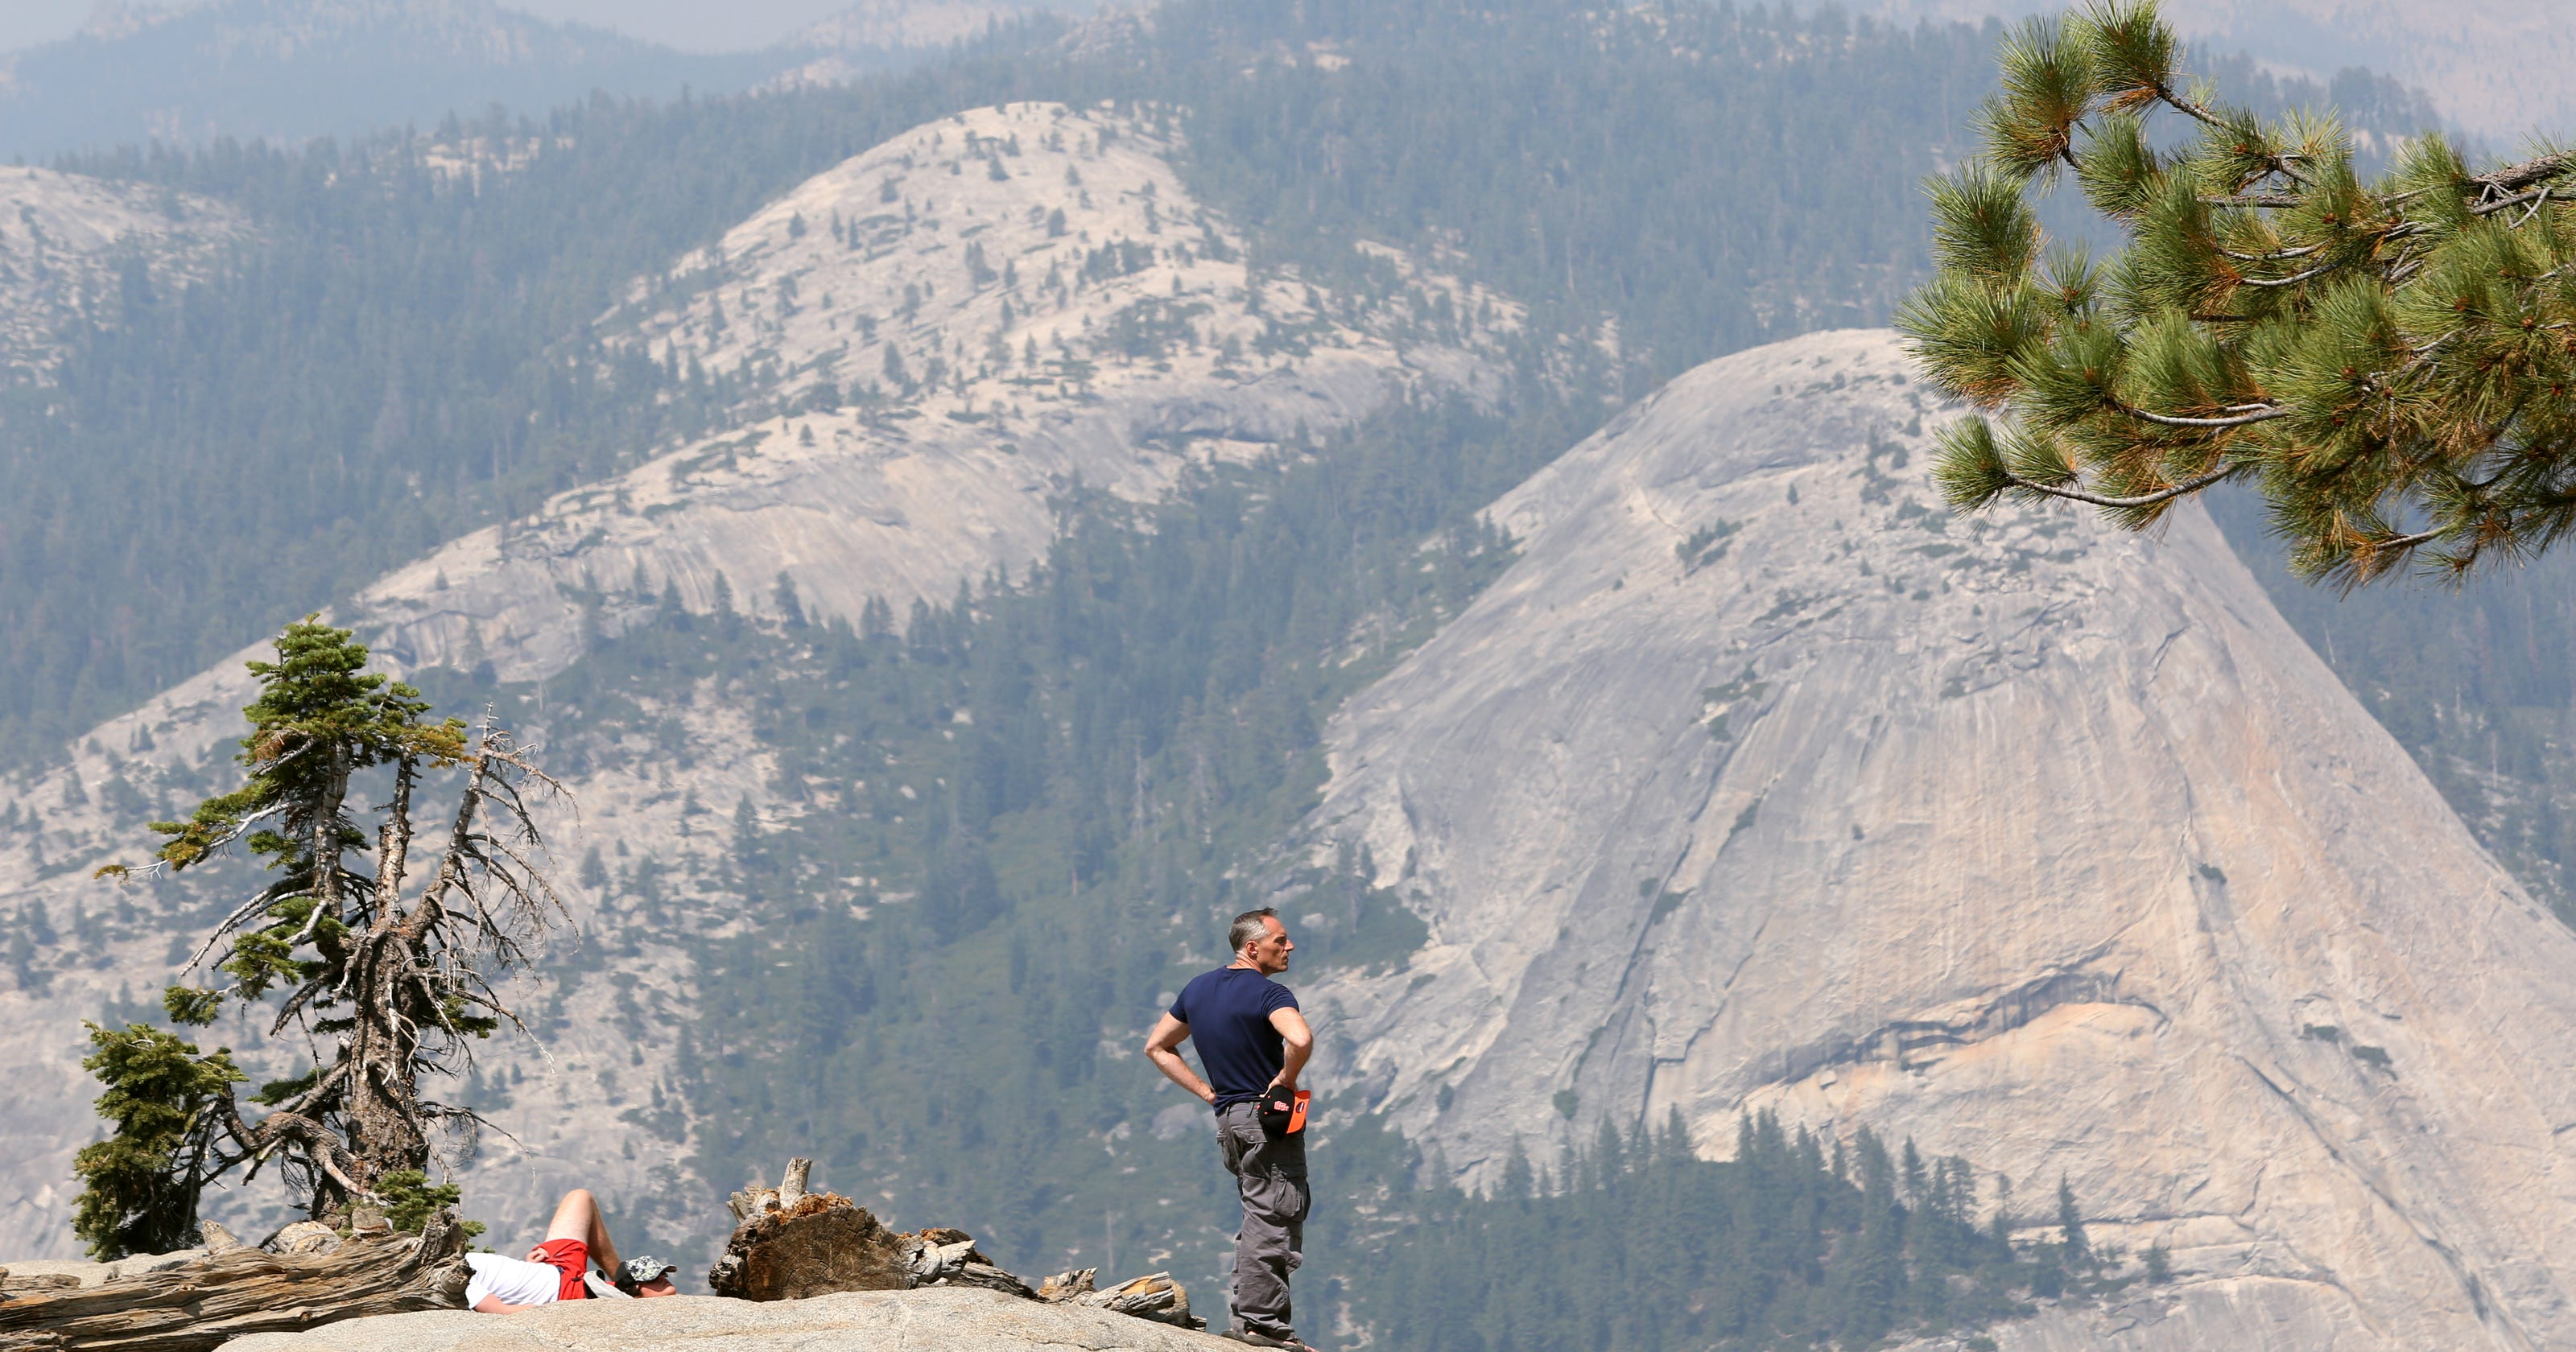 The nature of Yosemite hangs in the balance as national parks juggle growth, preservation